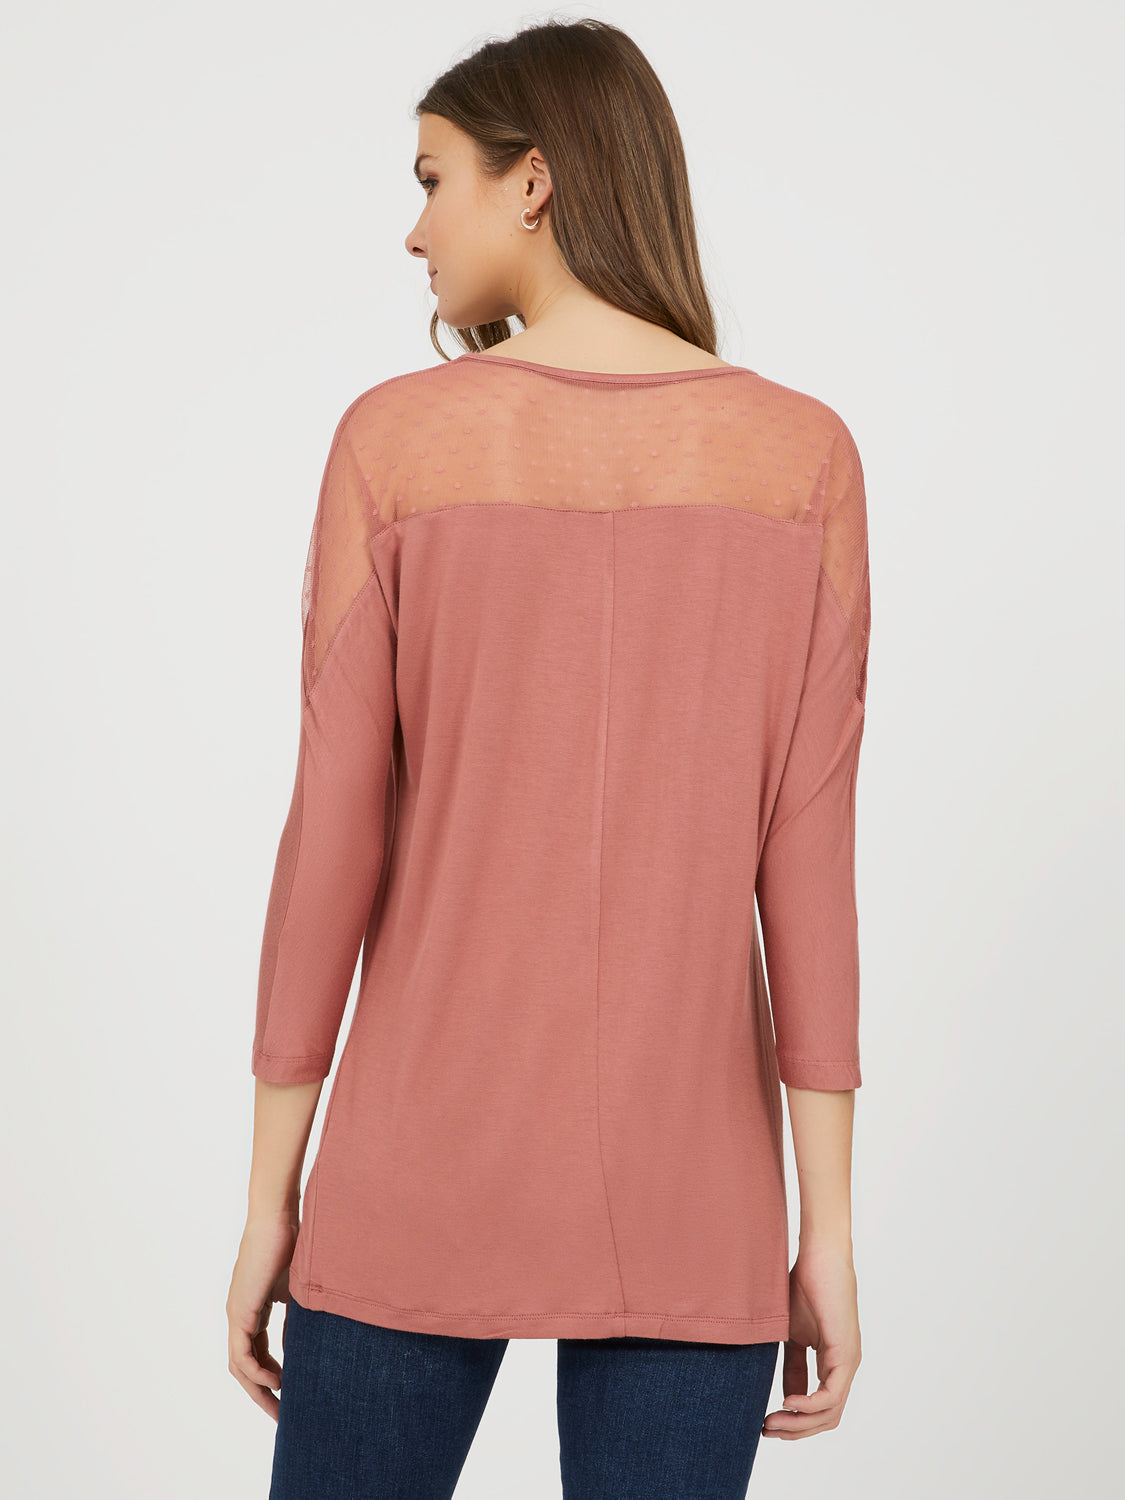 ¾ Dolman Sleeve Mesh Top